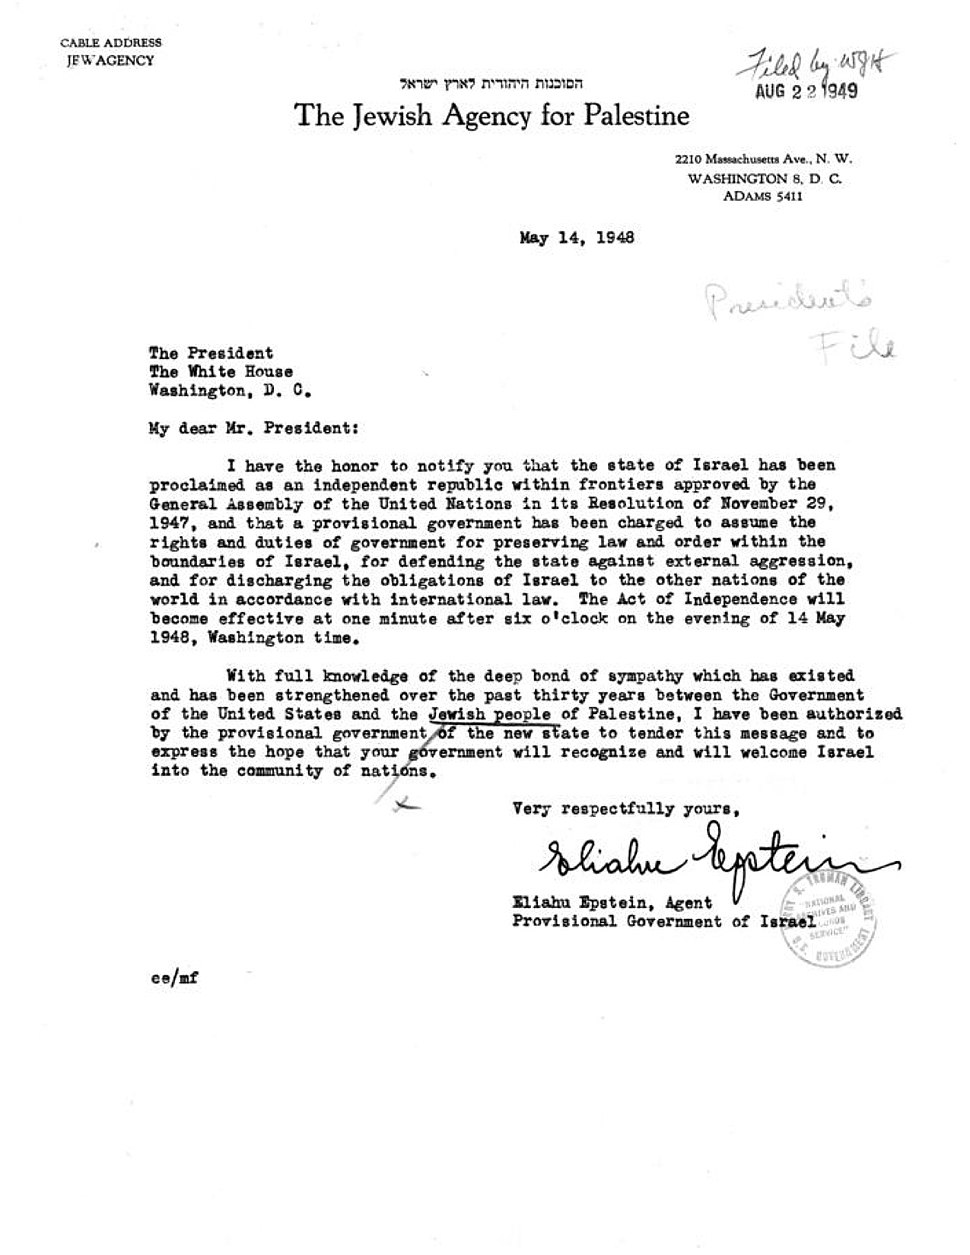 Letter from Eliahu Epstein to Harry S. Truman, May 14, 1948